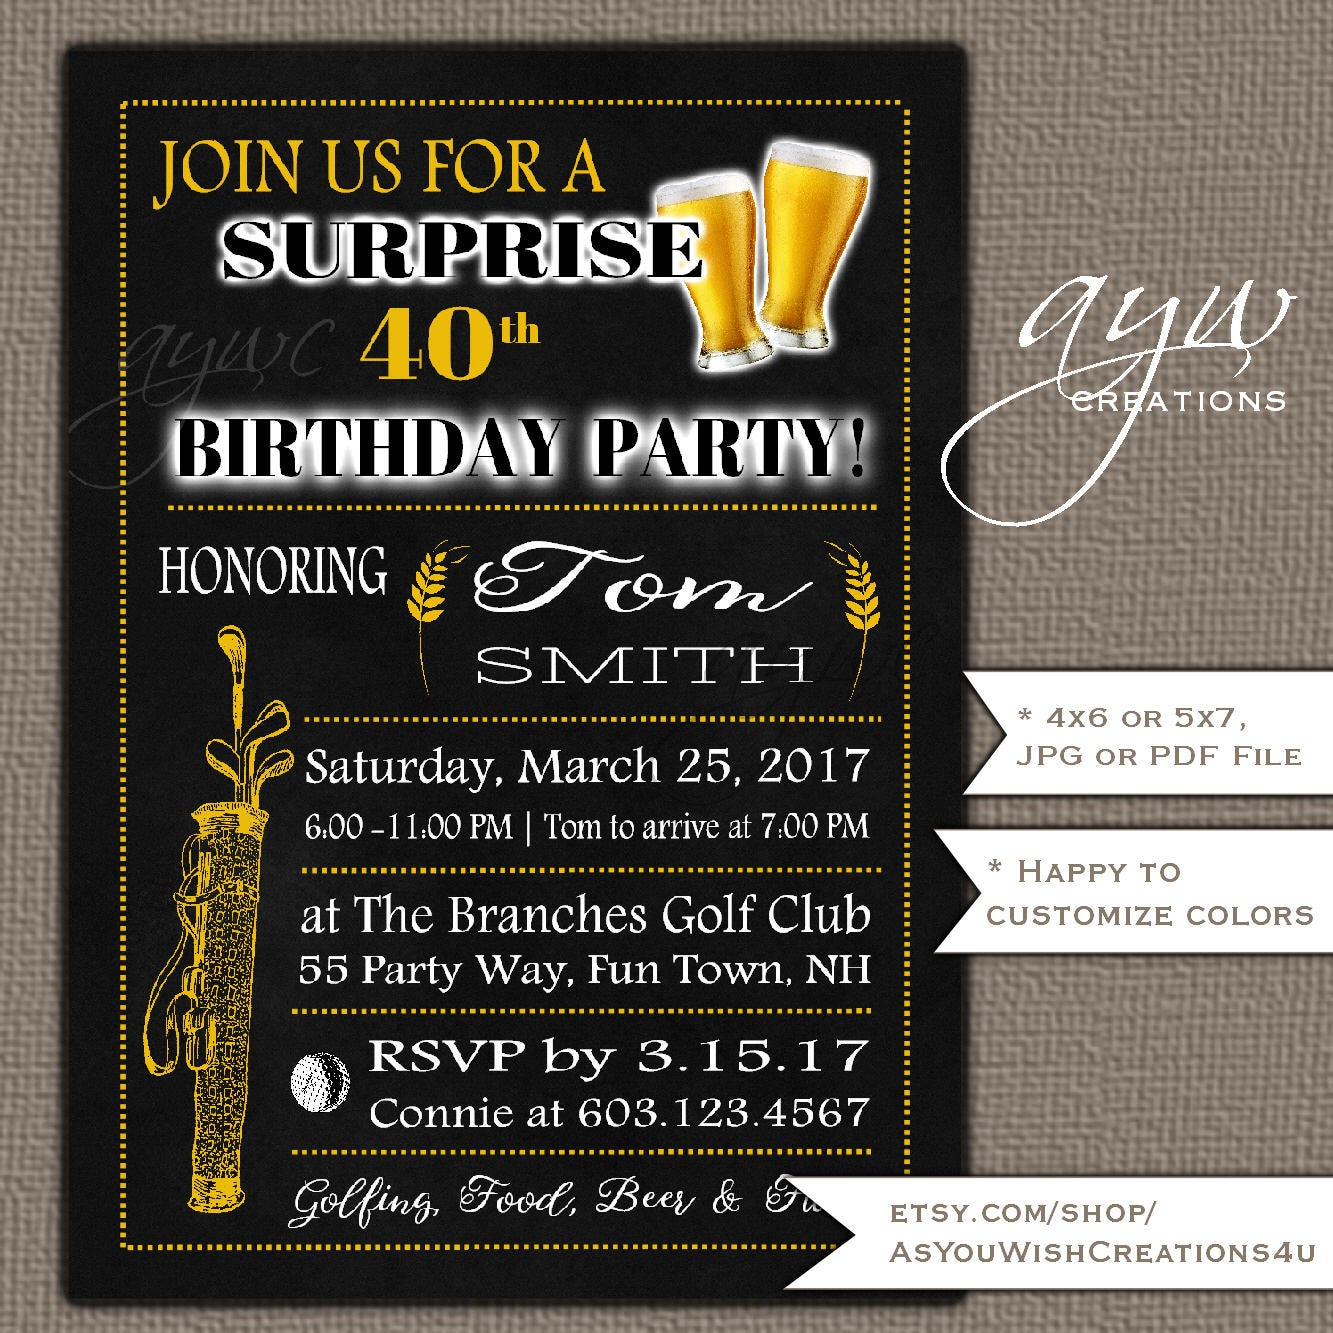 40th Birthday Party Invitation For Men's Birthday Party